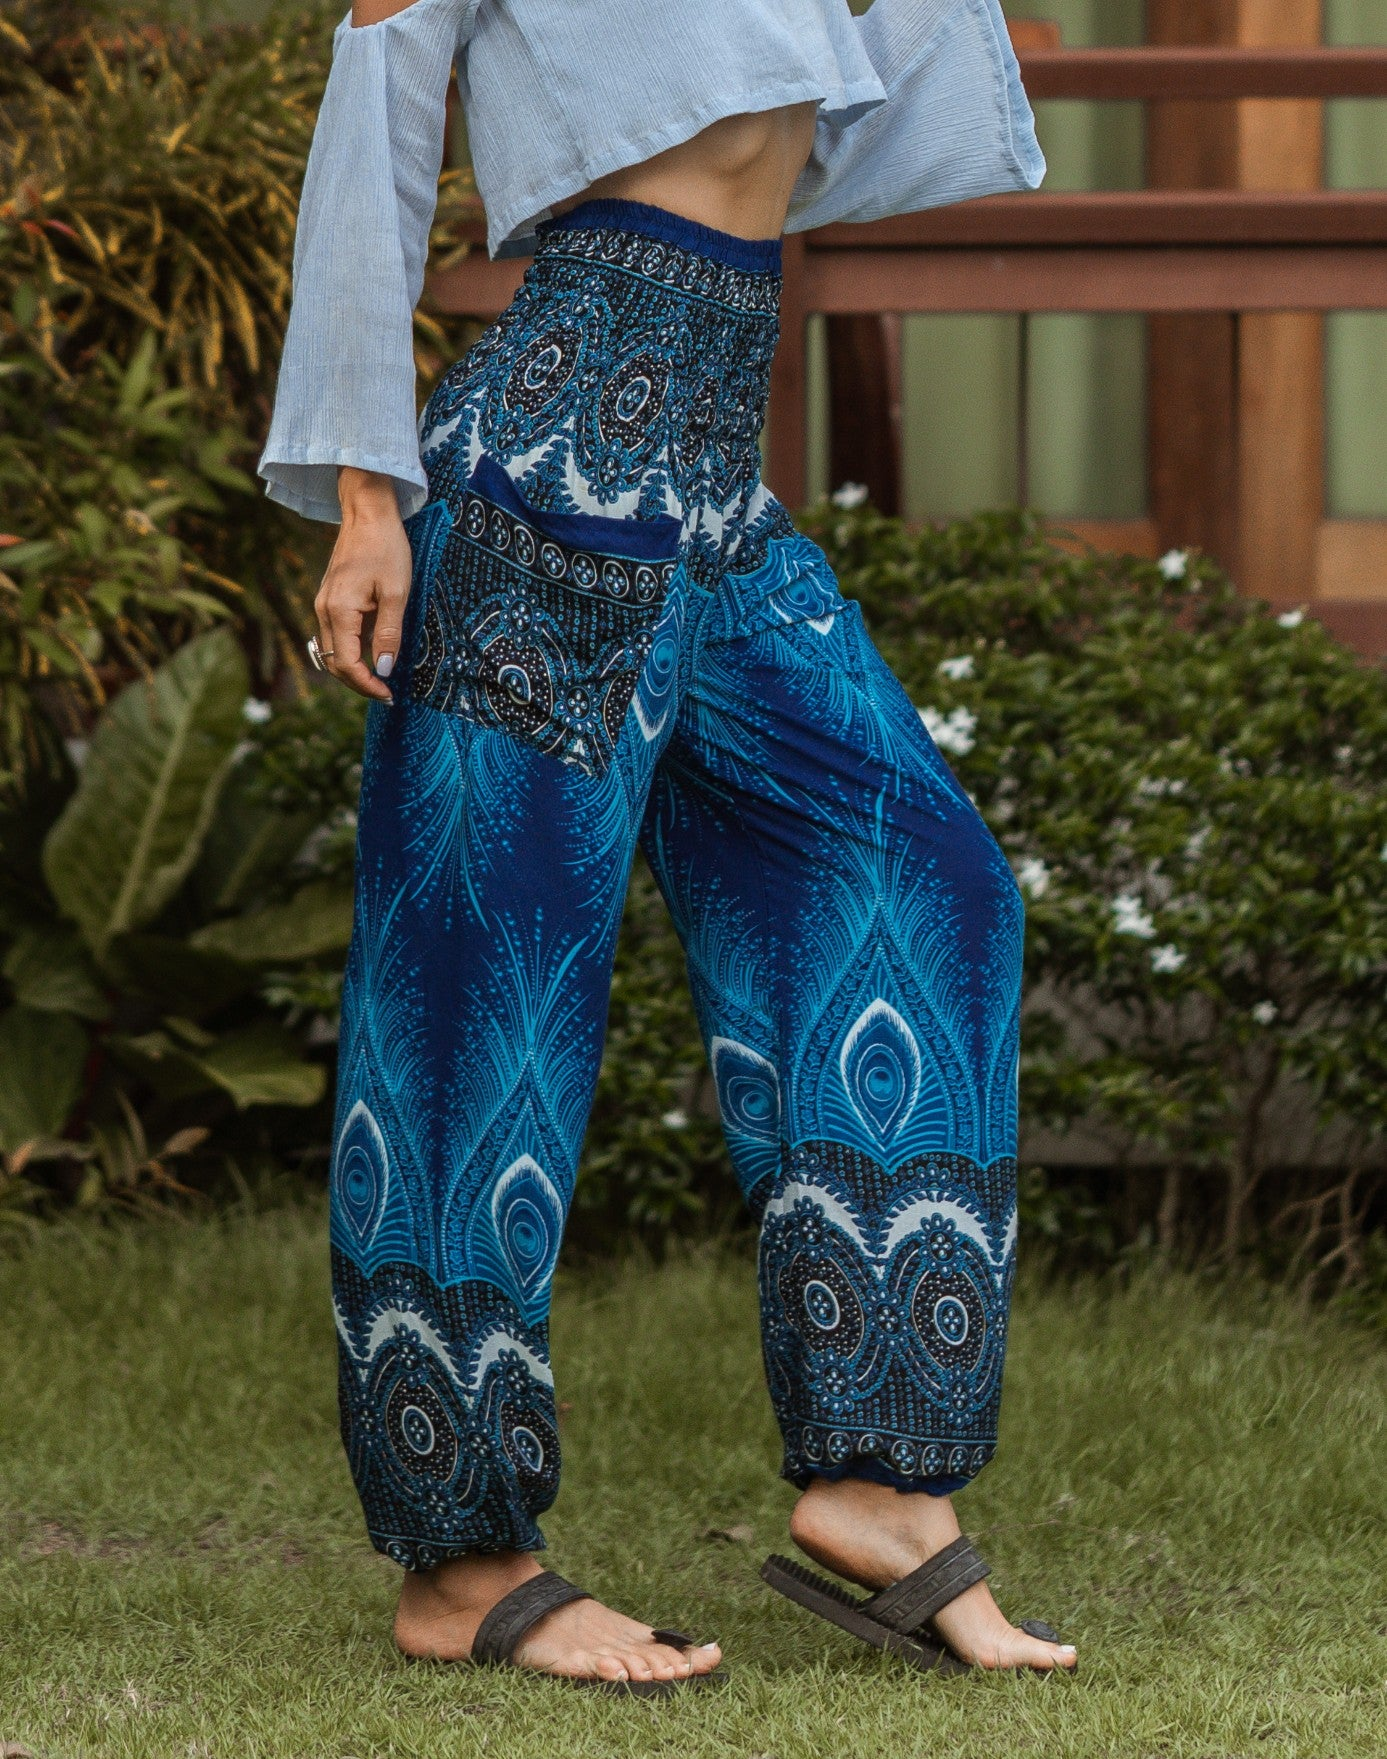 High Cut Harem Pants - Vibrant Peacock Feather Print - Bright Blue